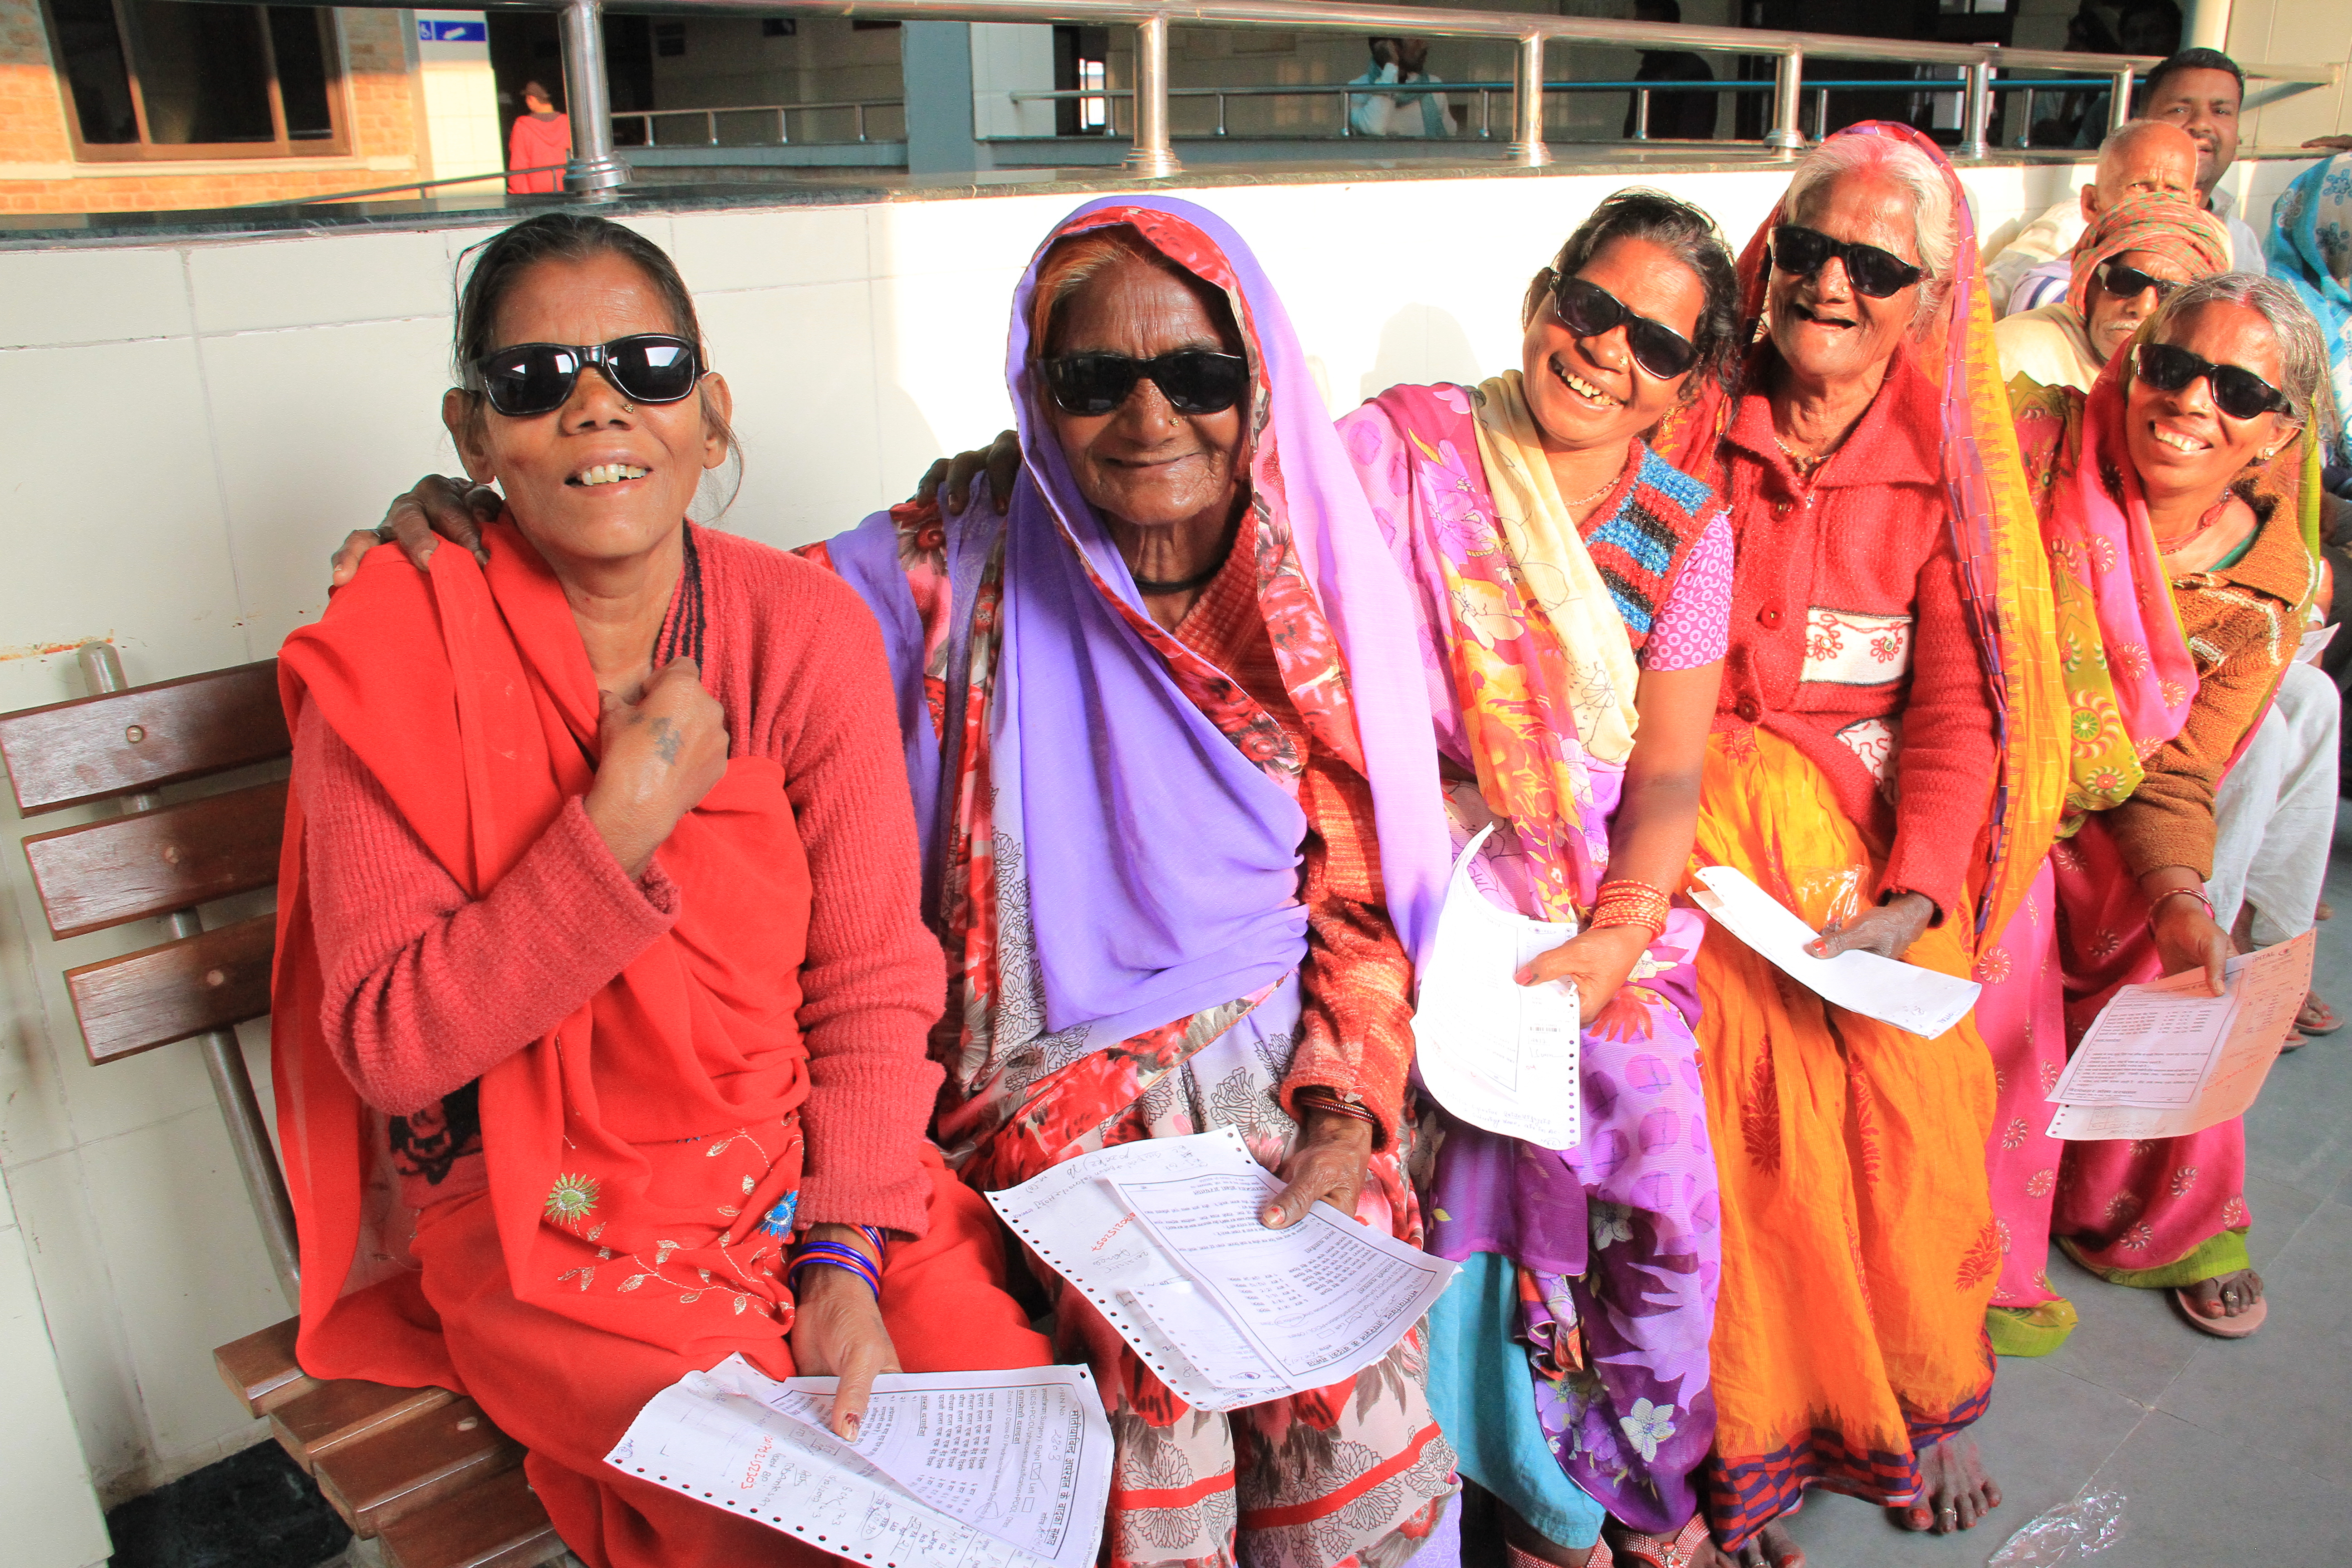 This image shows older women wearing colourful saris and sunglasses, sitting on a bench in a hospital and smiling at the camera.